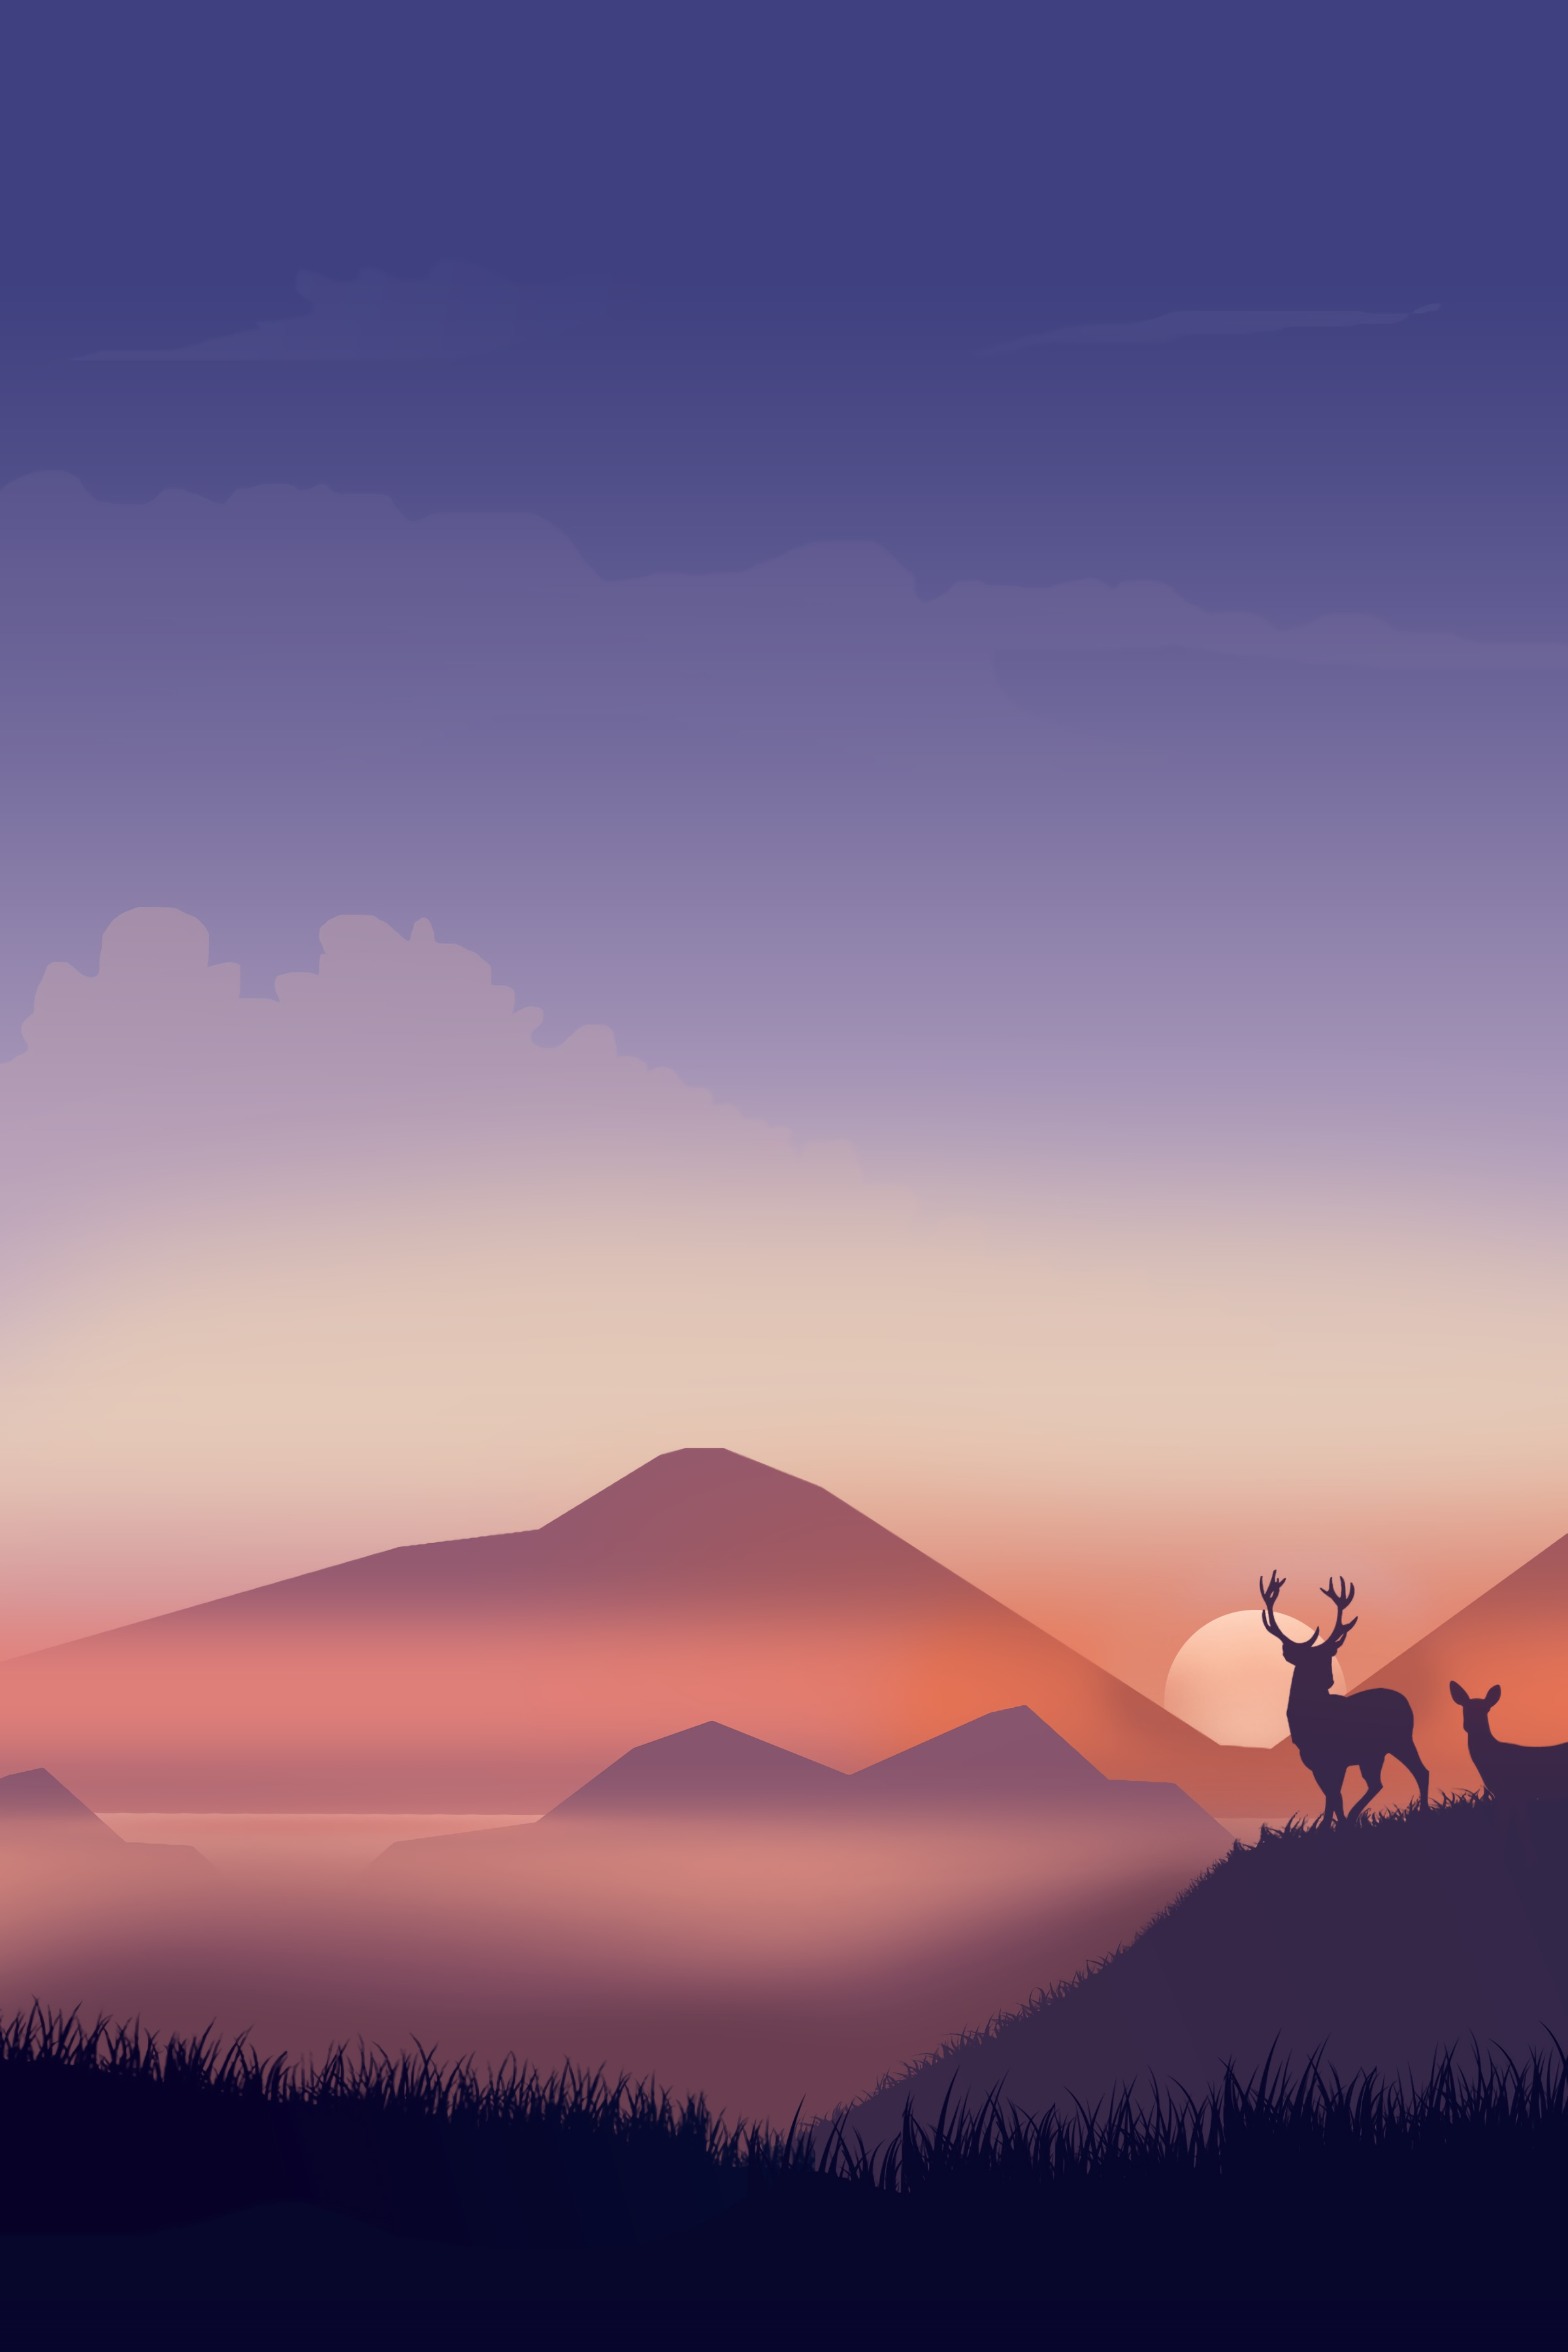 77512 download wallpaper Vector, Deers, Silhouettes, Wildlife, Art screensavers and pictures for free